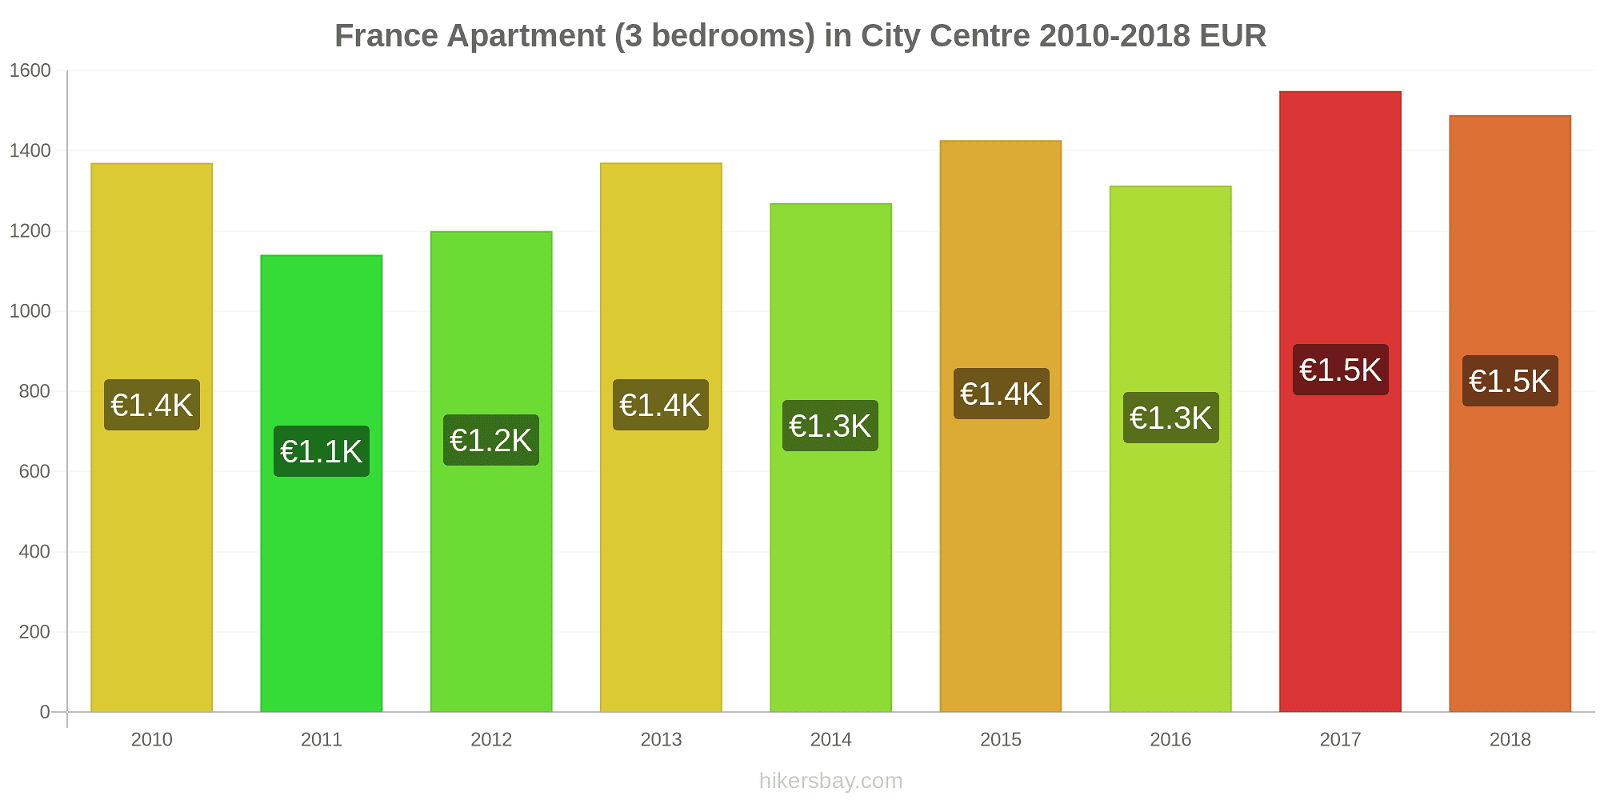 France price changes Apartment (3 bedrooms) in City Centre hikersbay.com